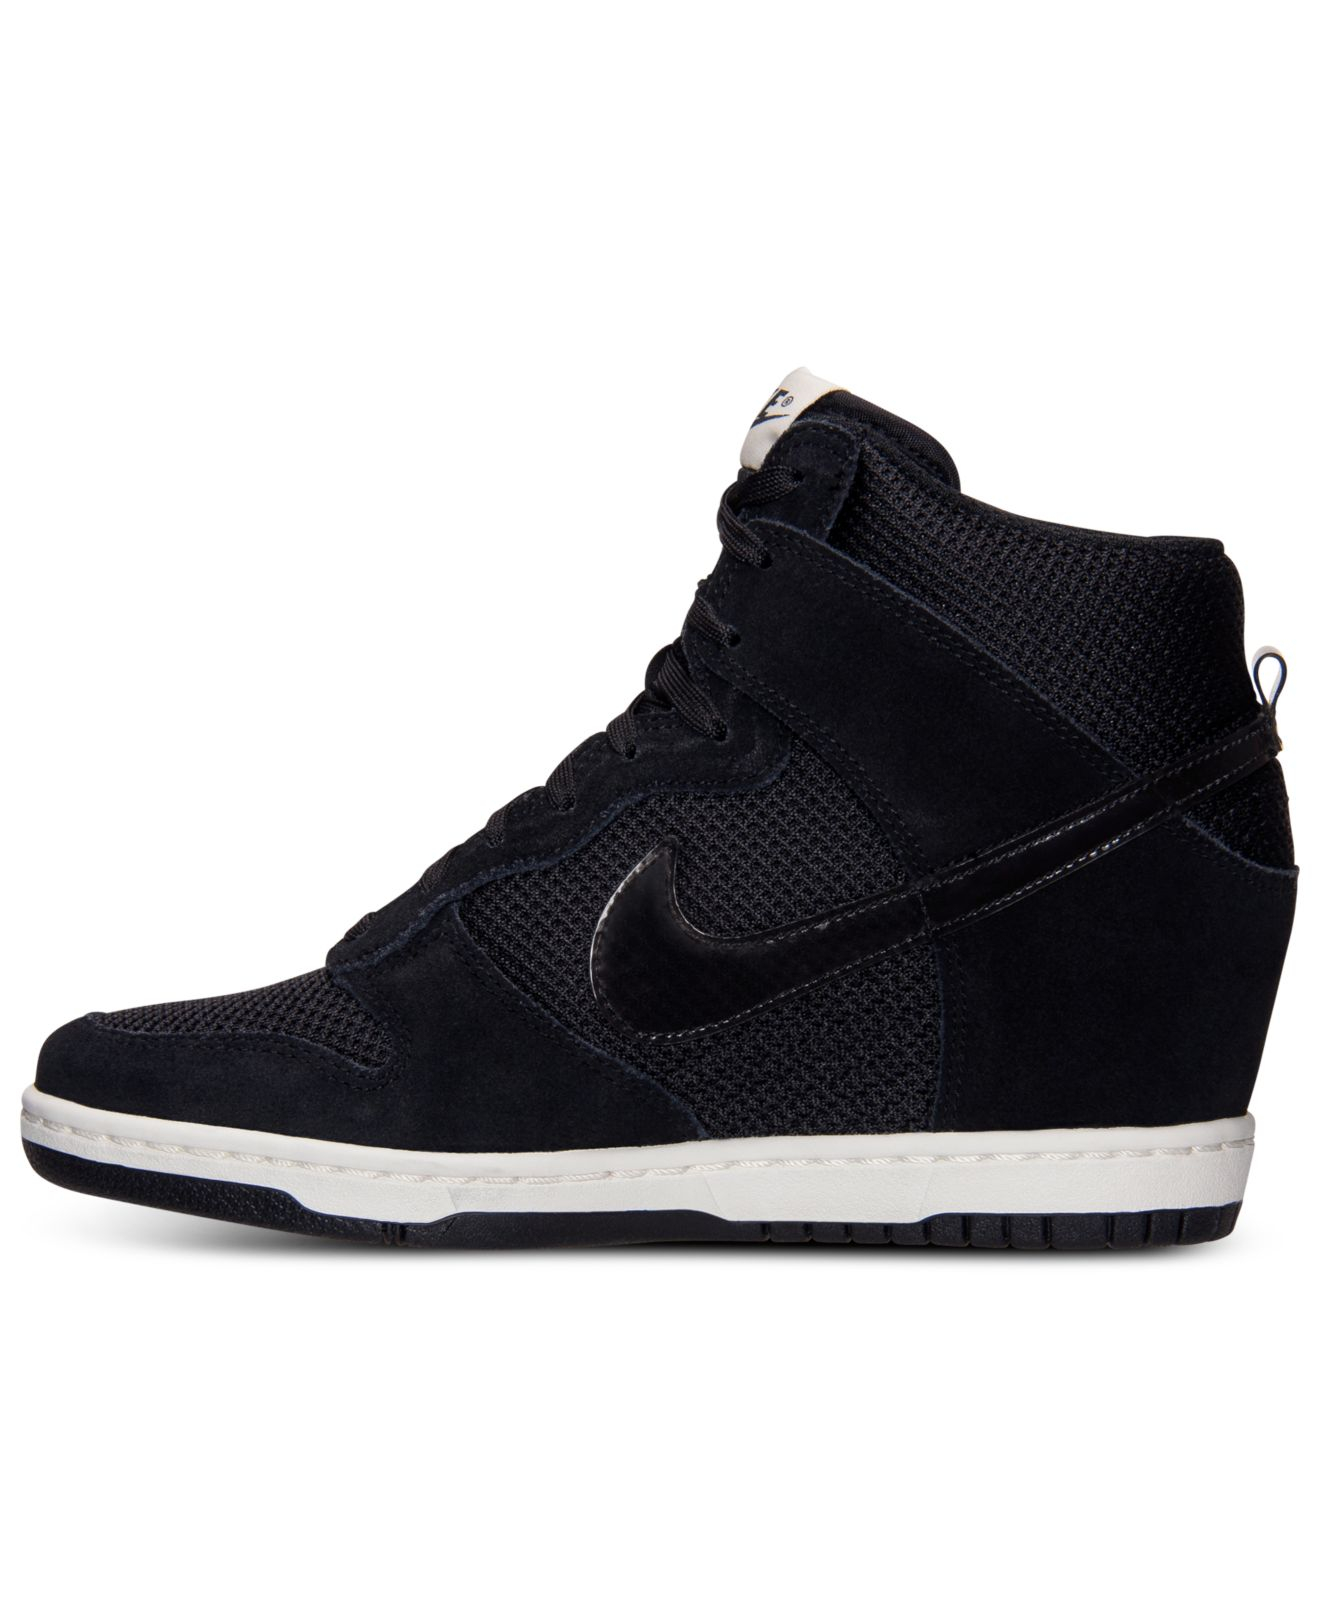 size 40 0837b 18de6 ... low price previously sold at macys womens nike dunk sky hi . 7ffe9 f1618